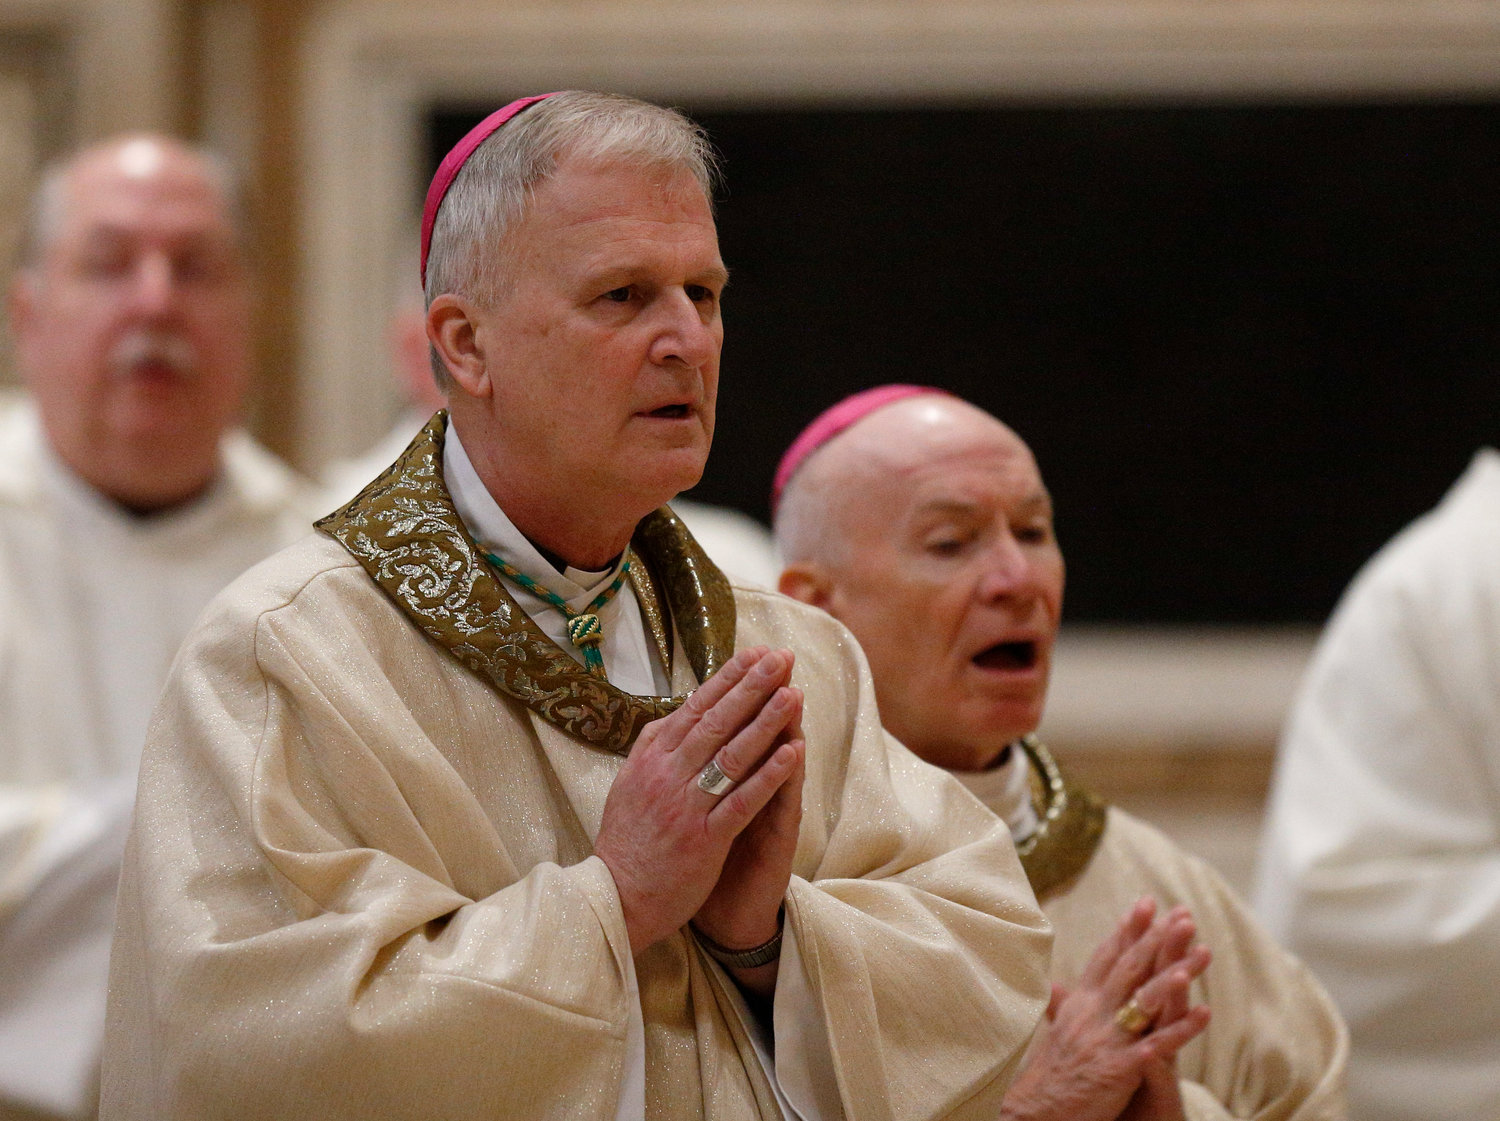 "Bishop James V. Johnston Jr. of Kansas City-Saint Joseph, Mo., and other U.S. bishops from Iowa, Kansas, Missouri and Nebraska concelebrate Mass at the Basilica of St. Mary Major in Rome Jan. 14, 2020. The bishops were making their ""ad limina"" visits to the Vatican to report on the status of their dioceses to the pope and Vatican officials. Behind him is Monsignor Robert A. Kurwicki, vicar general for the Jefferson City diocese."